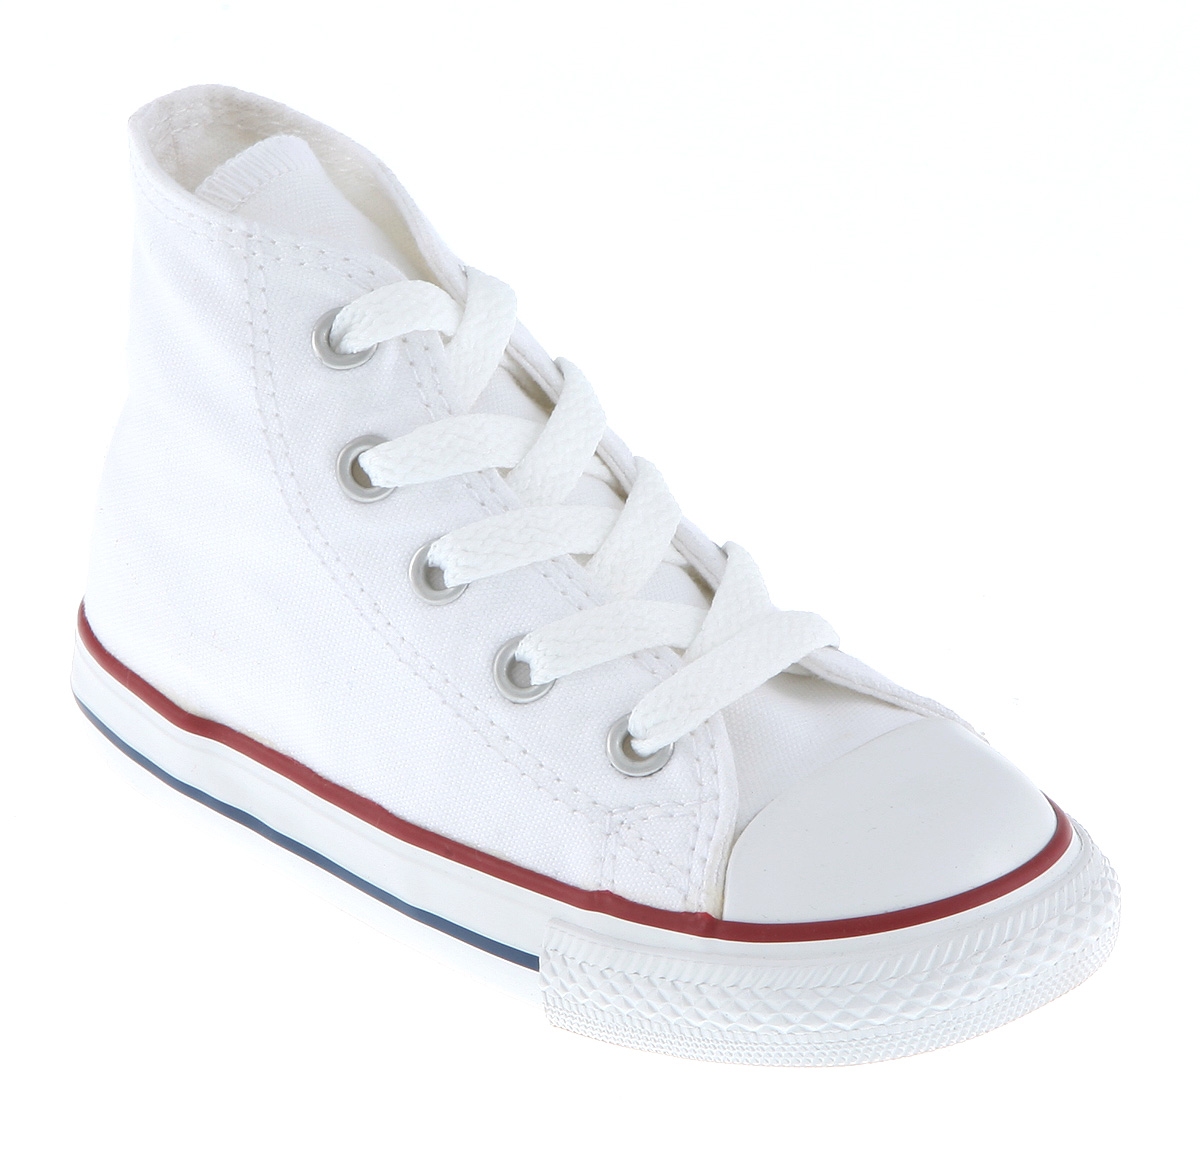 Kids-Converse-Small-Star-Hi-Canvas-12-m-White-Trainers